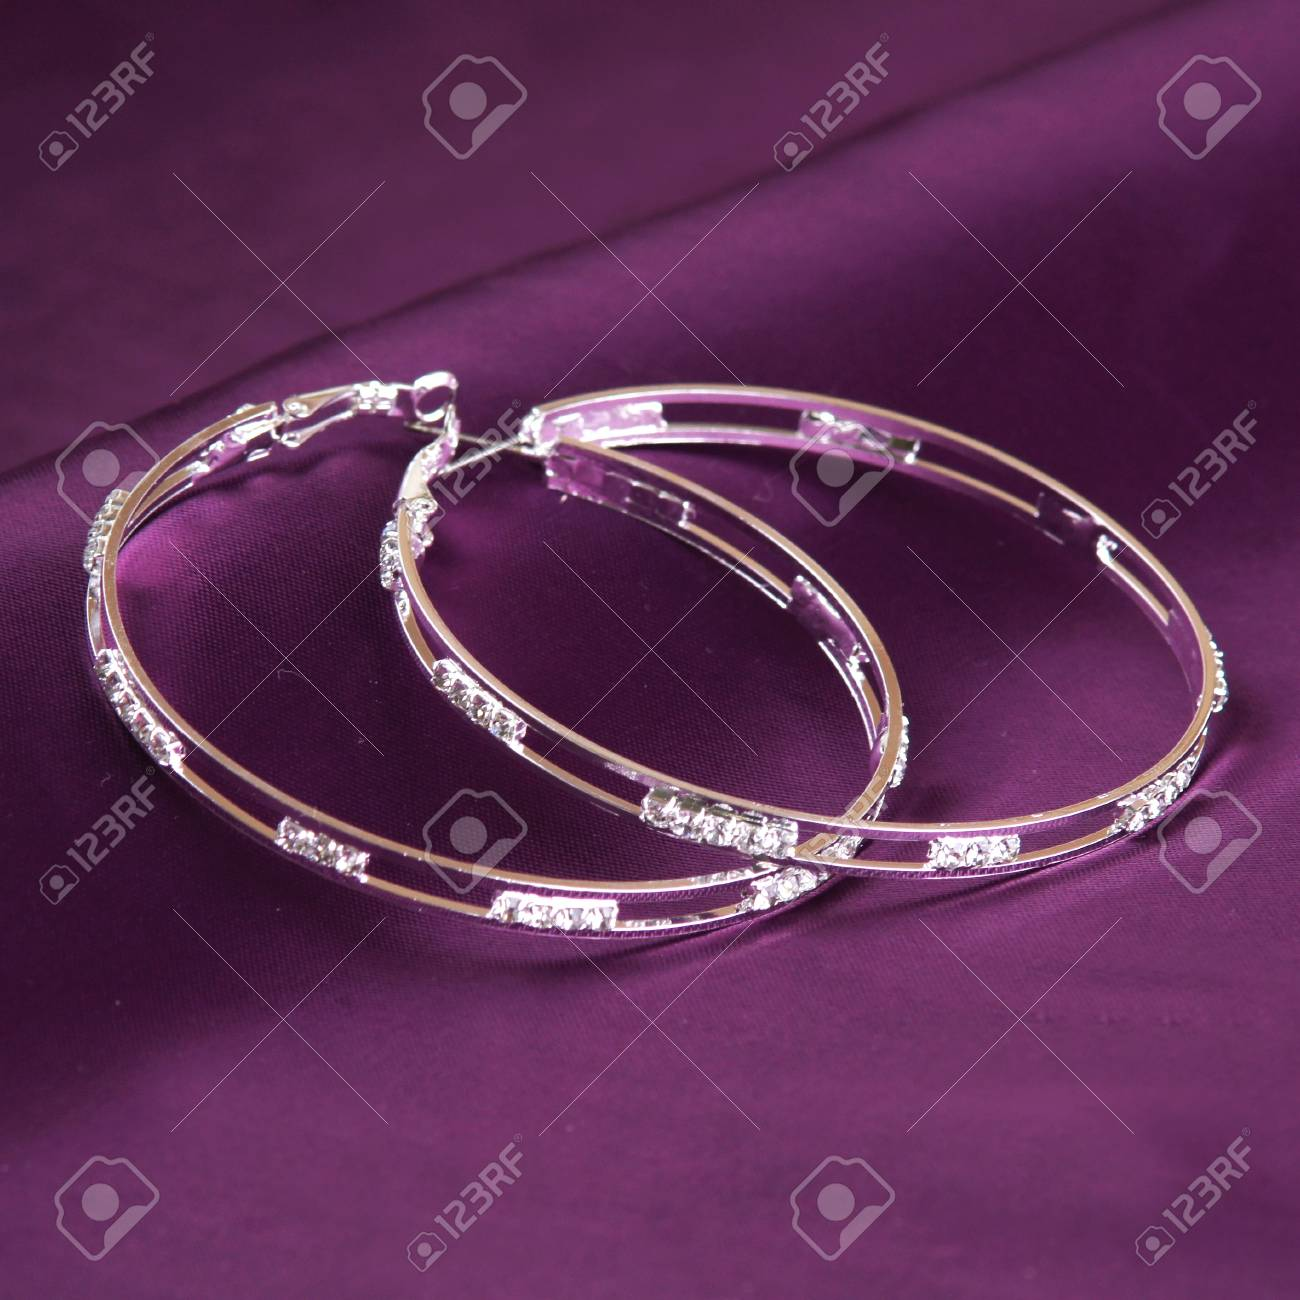 silver earrings Stock Photo - 15764523